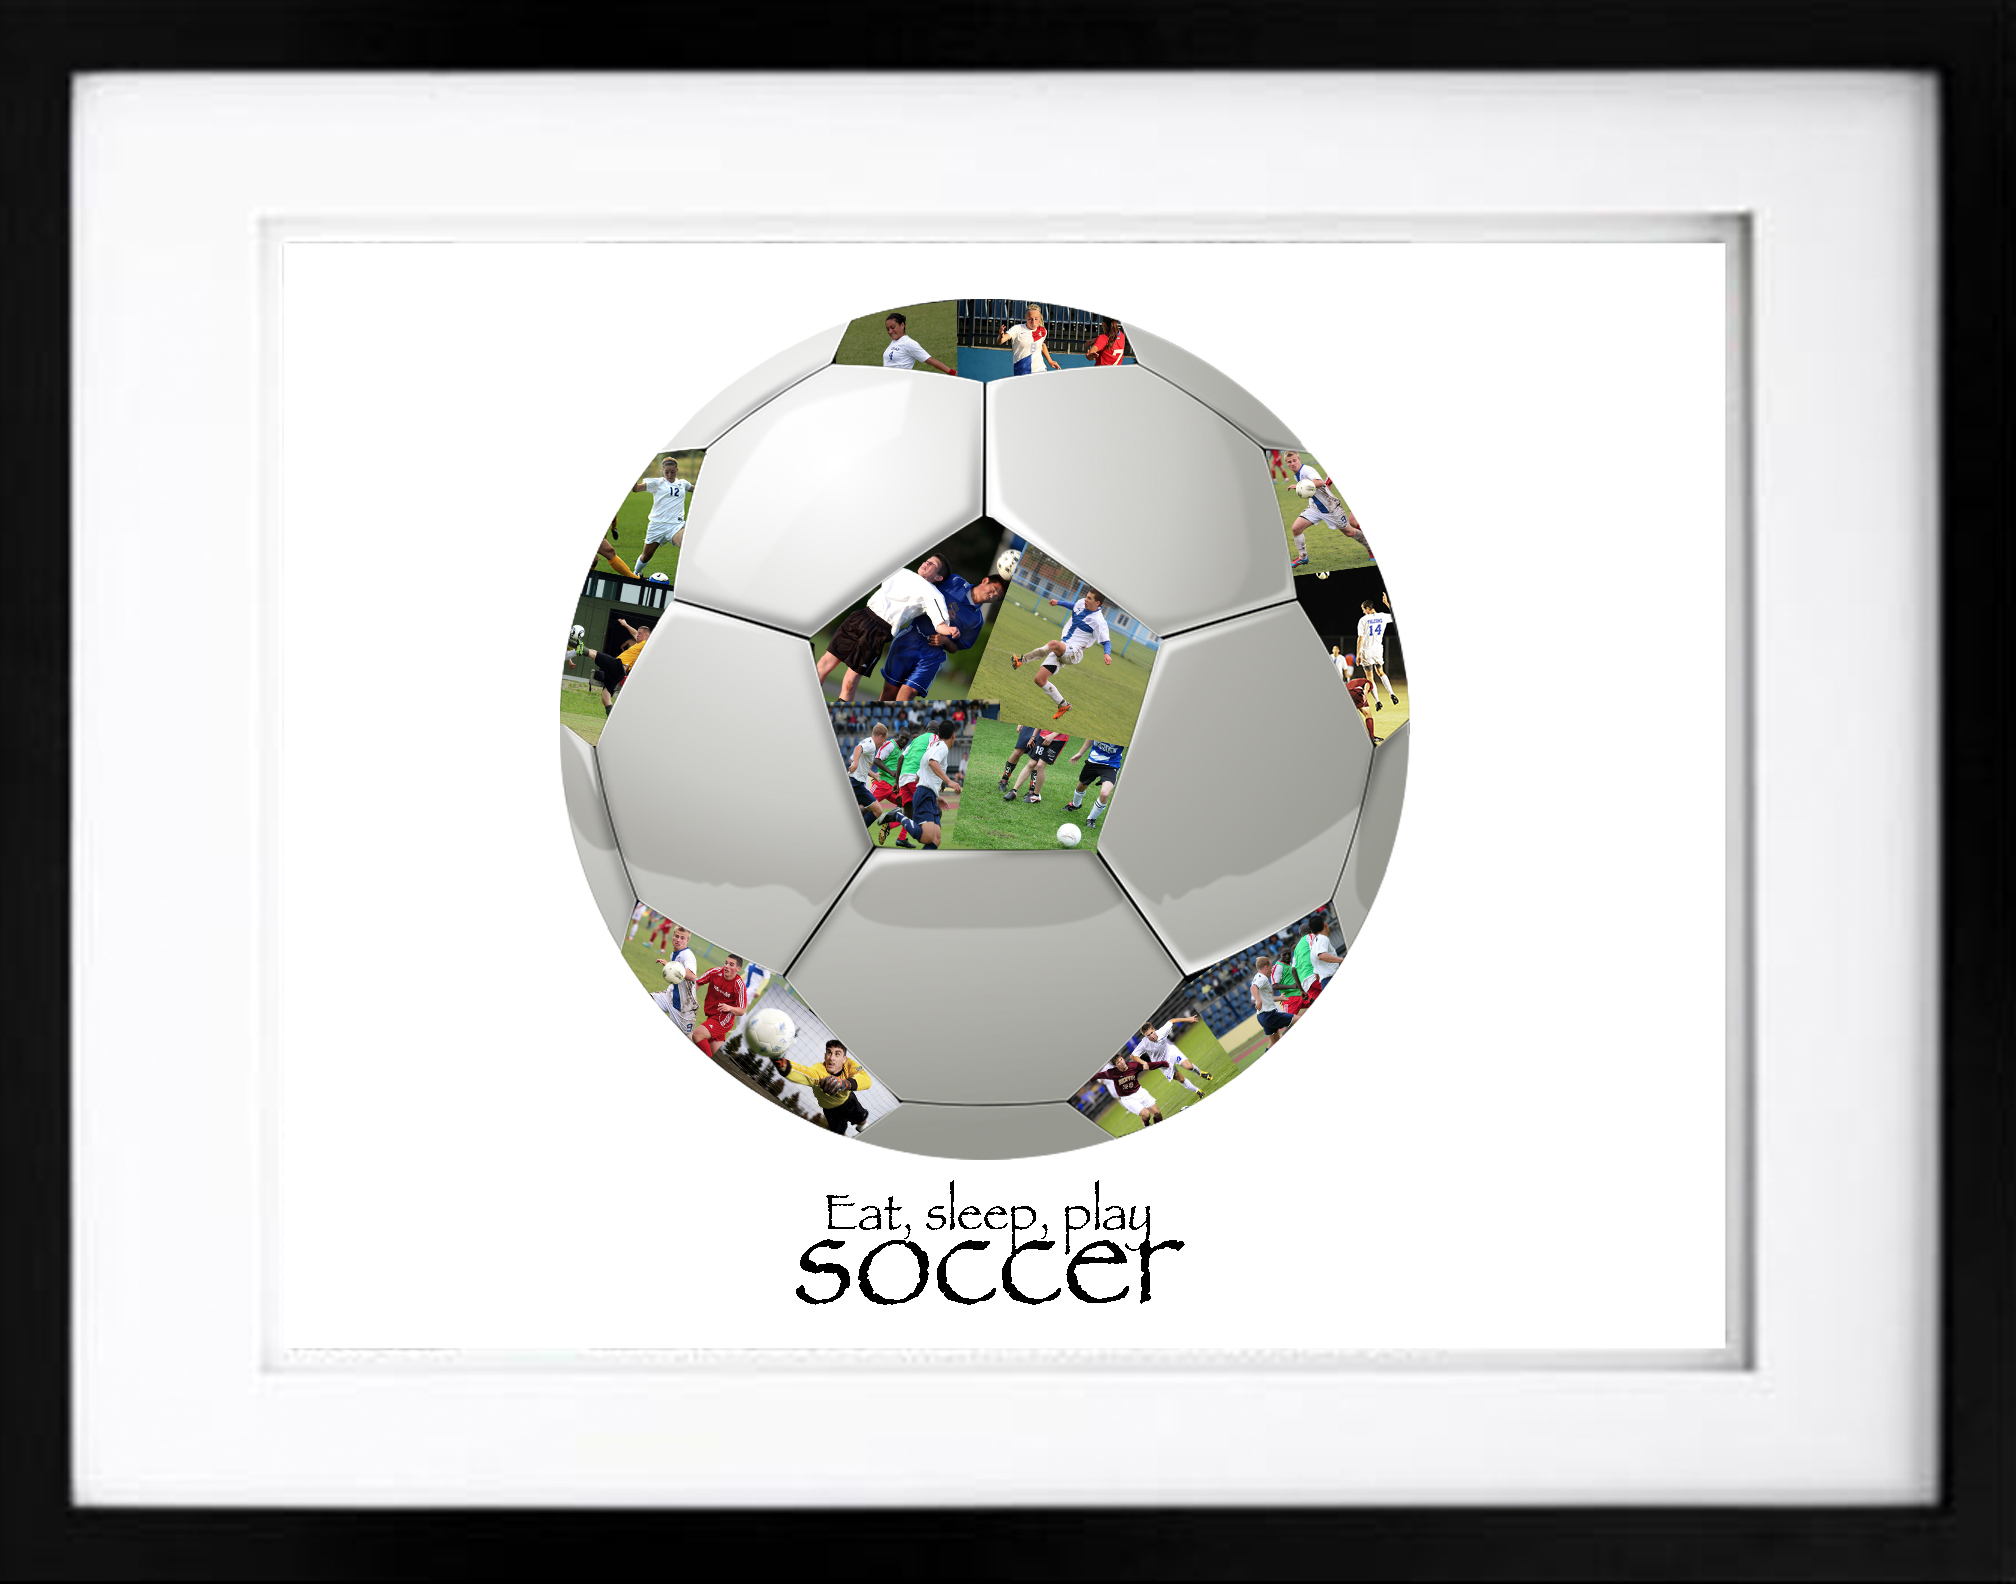 Soccer Ball Photo Collage - Design #1: Premium, Hand-Crafted Photo ...